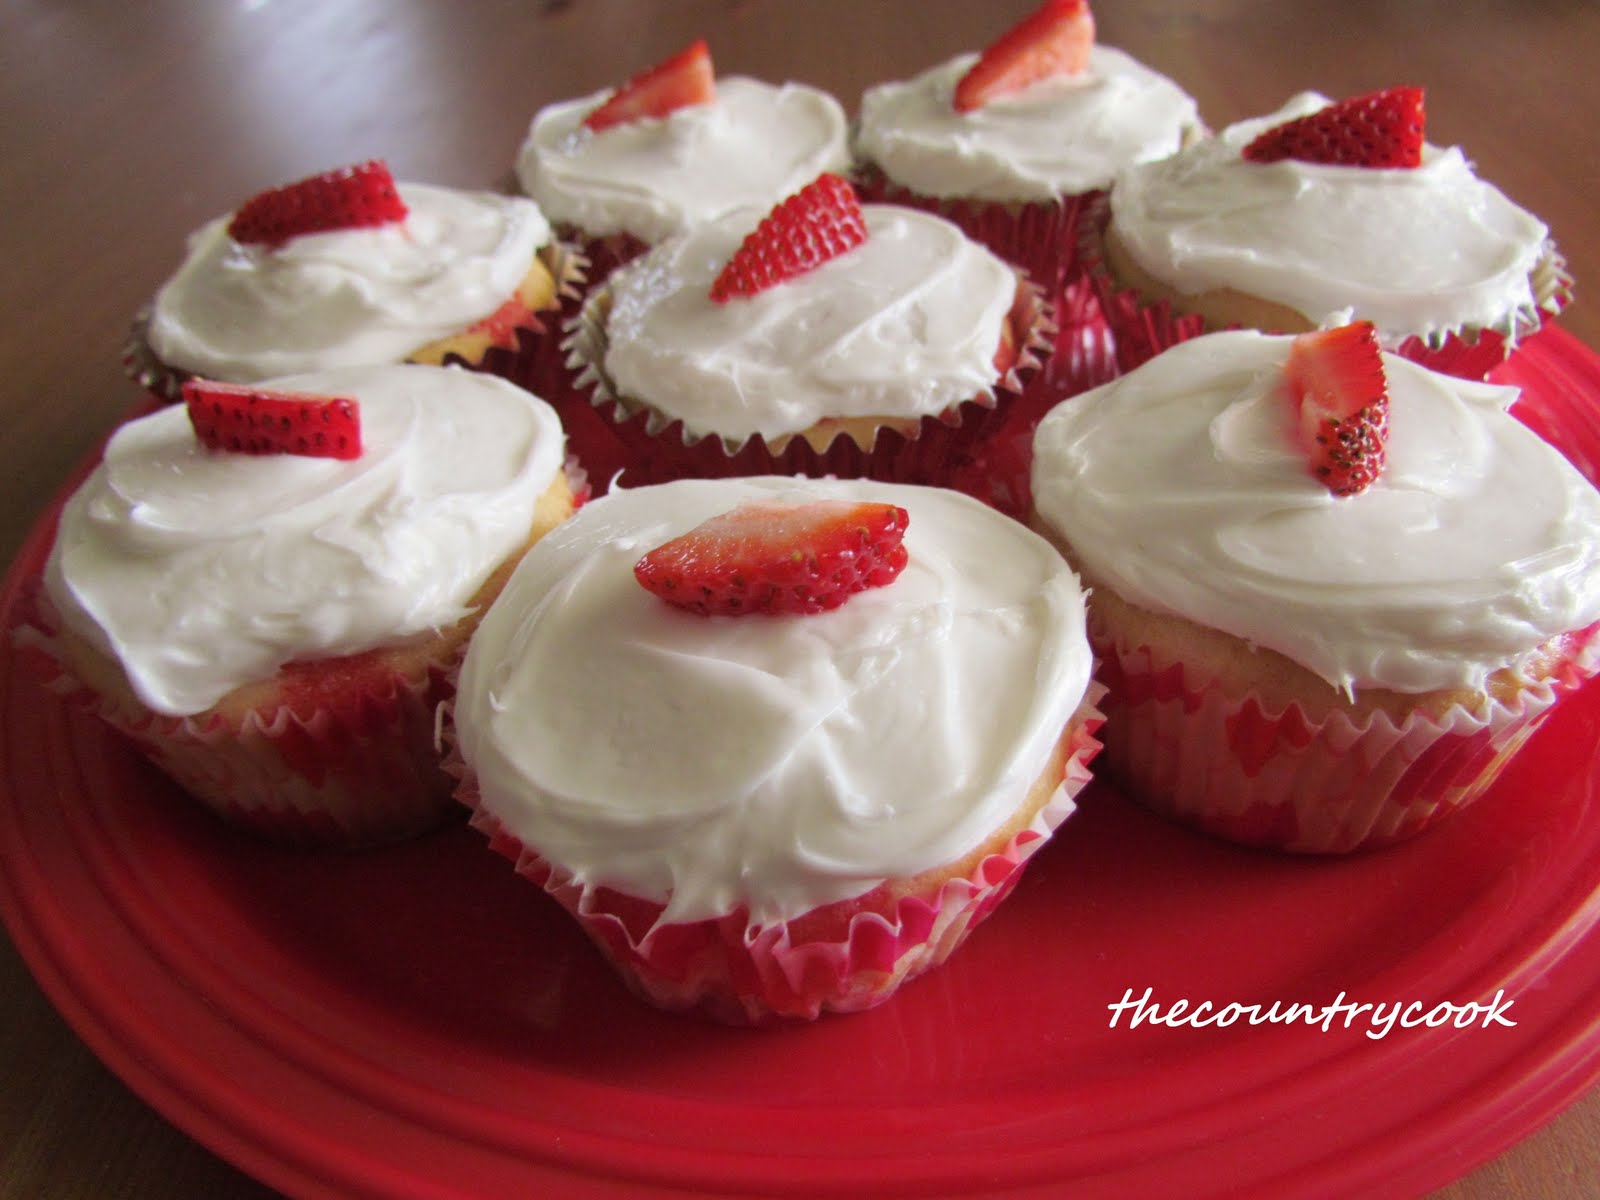 Can You Use Any Cake Recipe For Cupcakes